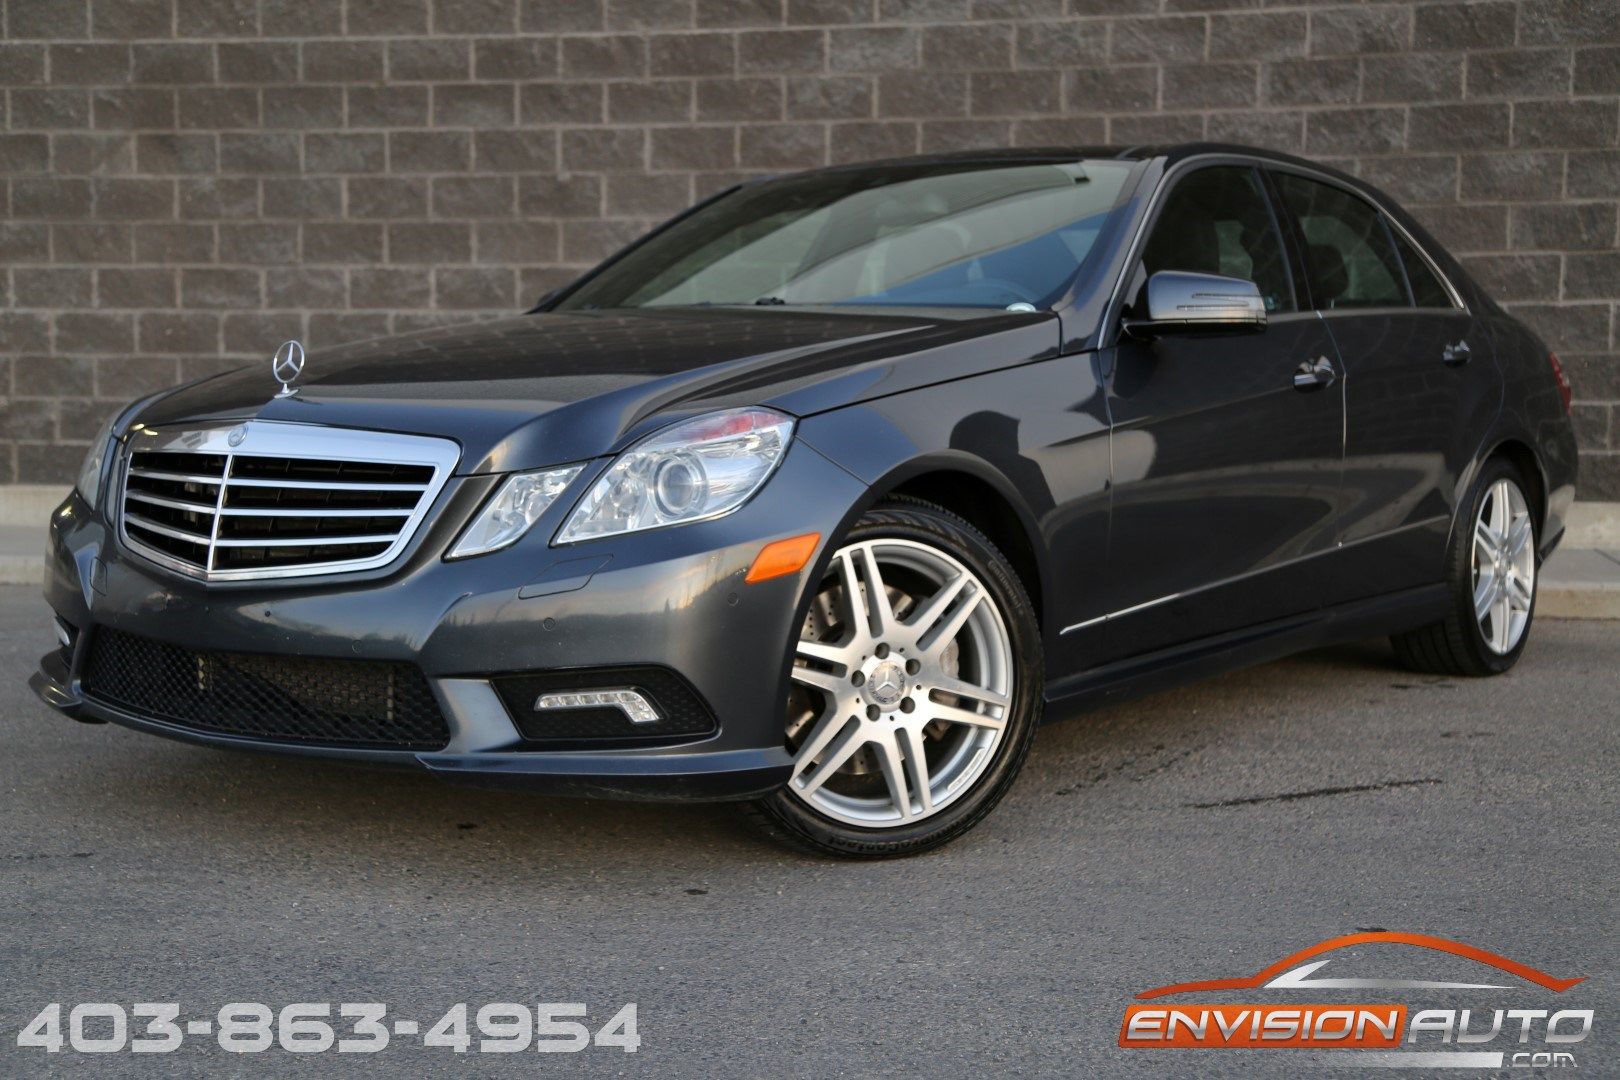 2010 mercedes benz e550 4matic spotless history envision auto calgary highline luxury sports. Black Bedroom Furniture Sets. Home Design Ideas